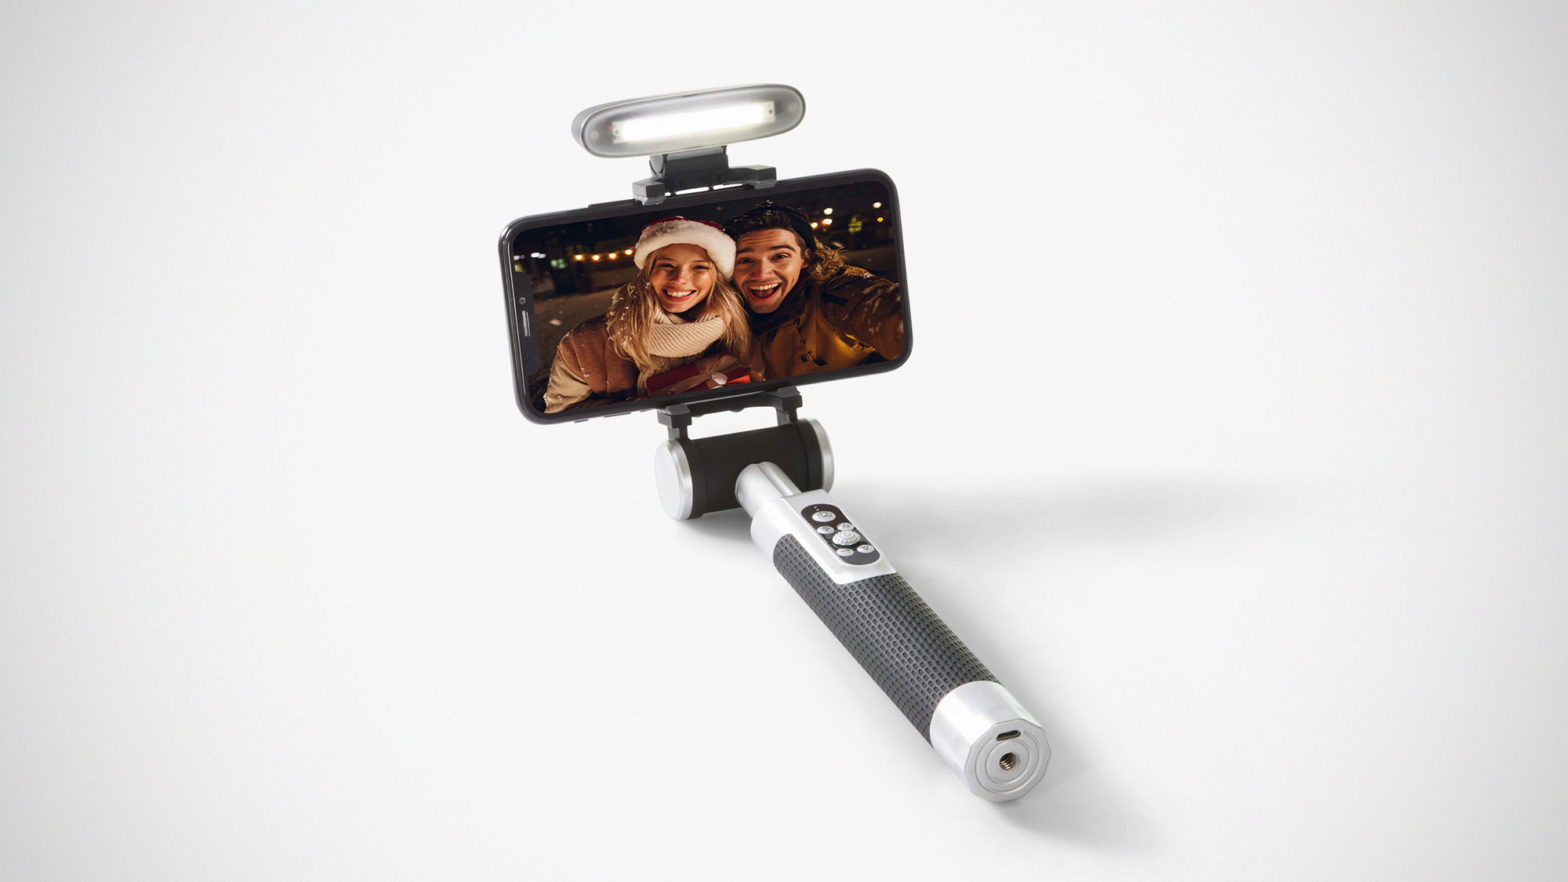 Pictar Smart-Light Selfie Stick